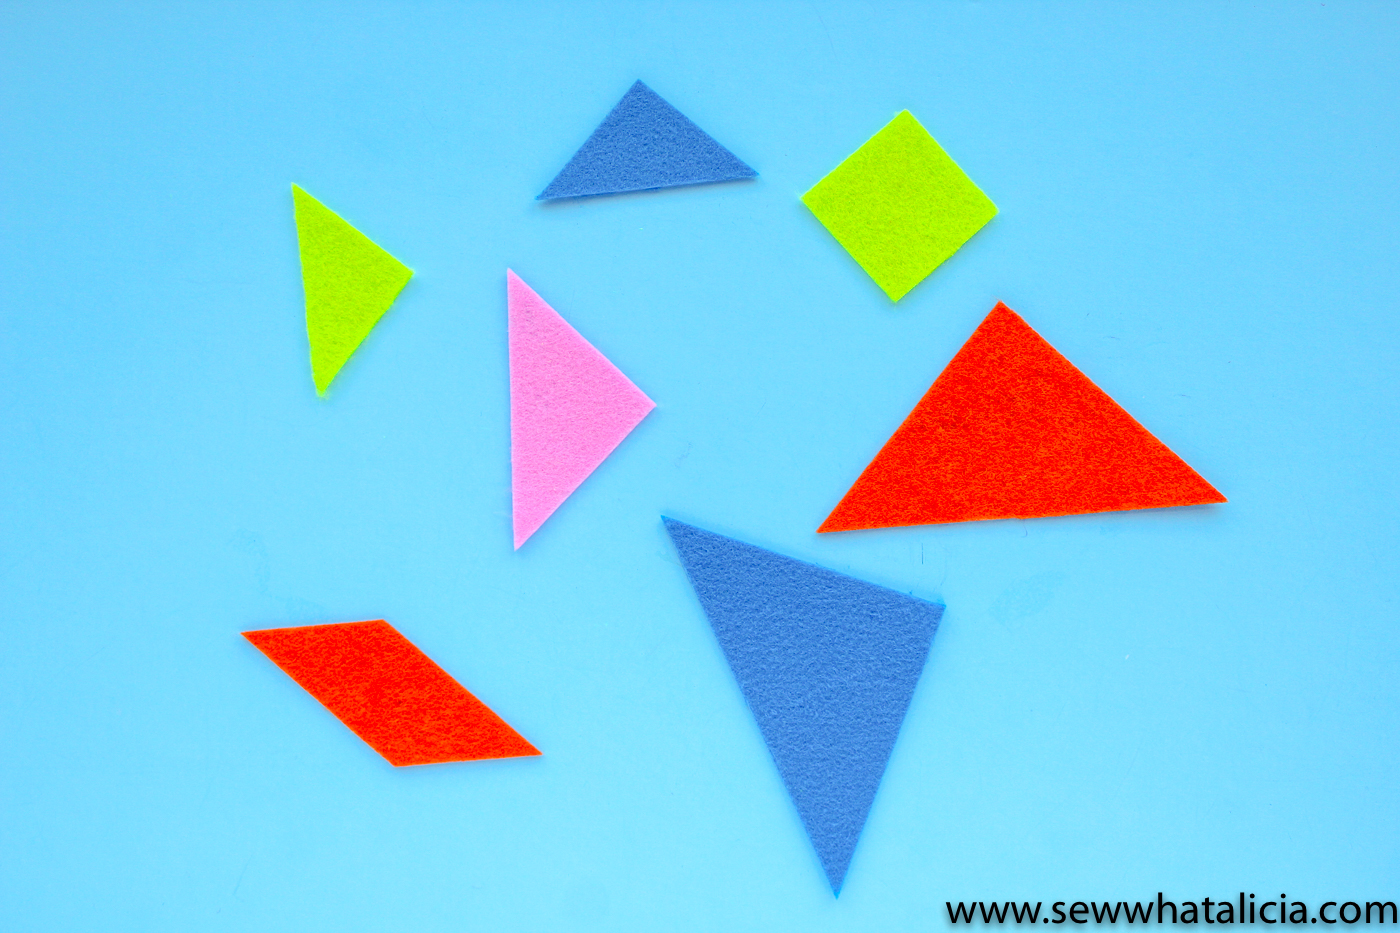 photo about Printable Tangrams Pdf Free named Cuttable and Printable Tangrams PDF - Sew What, Alicia?